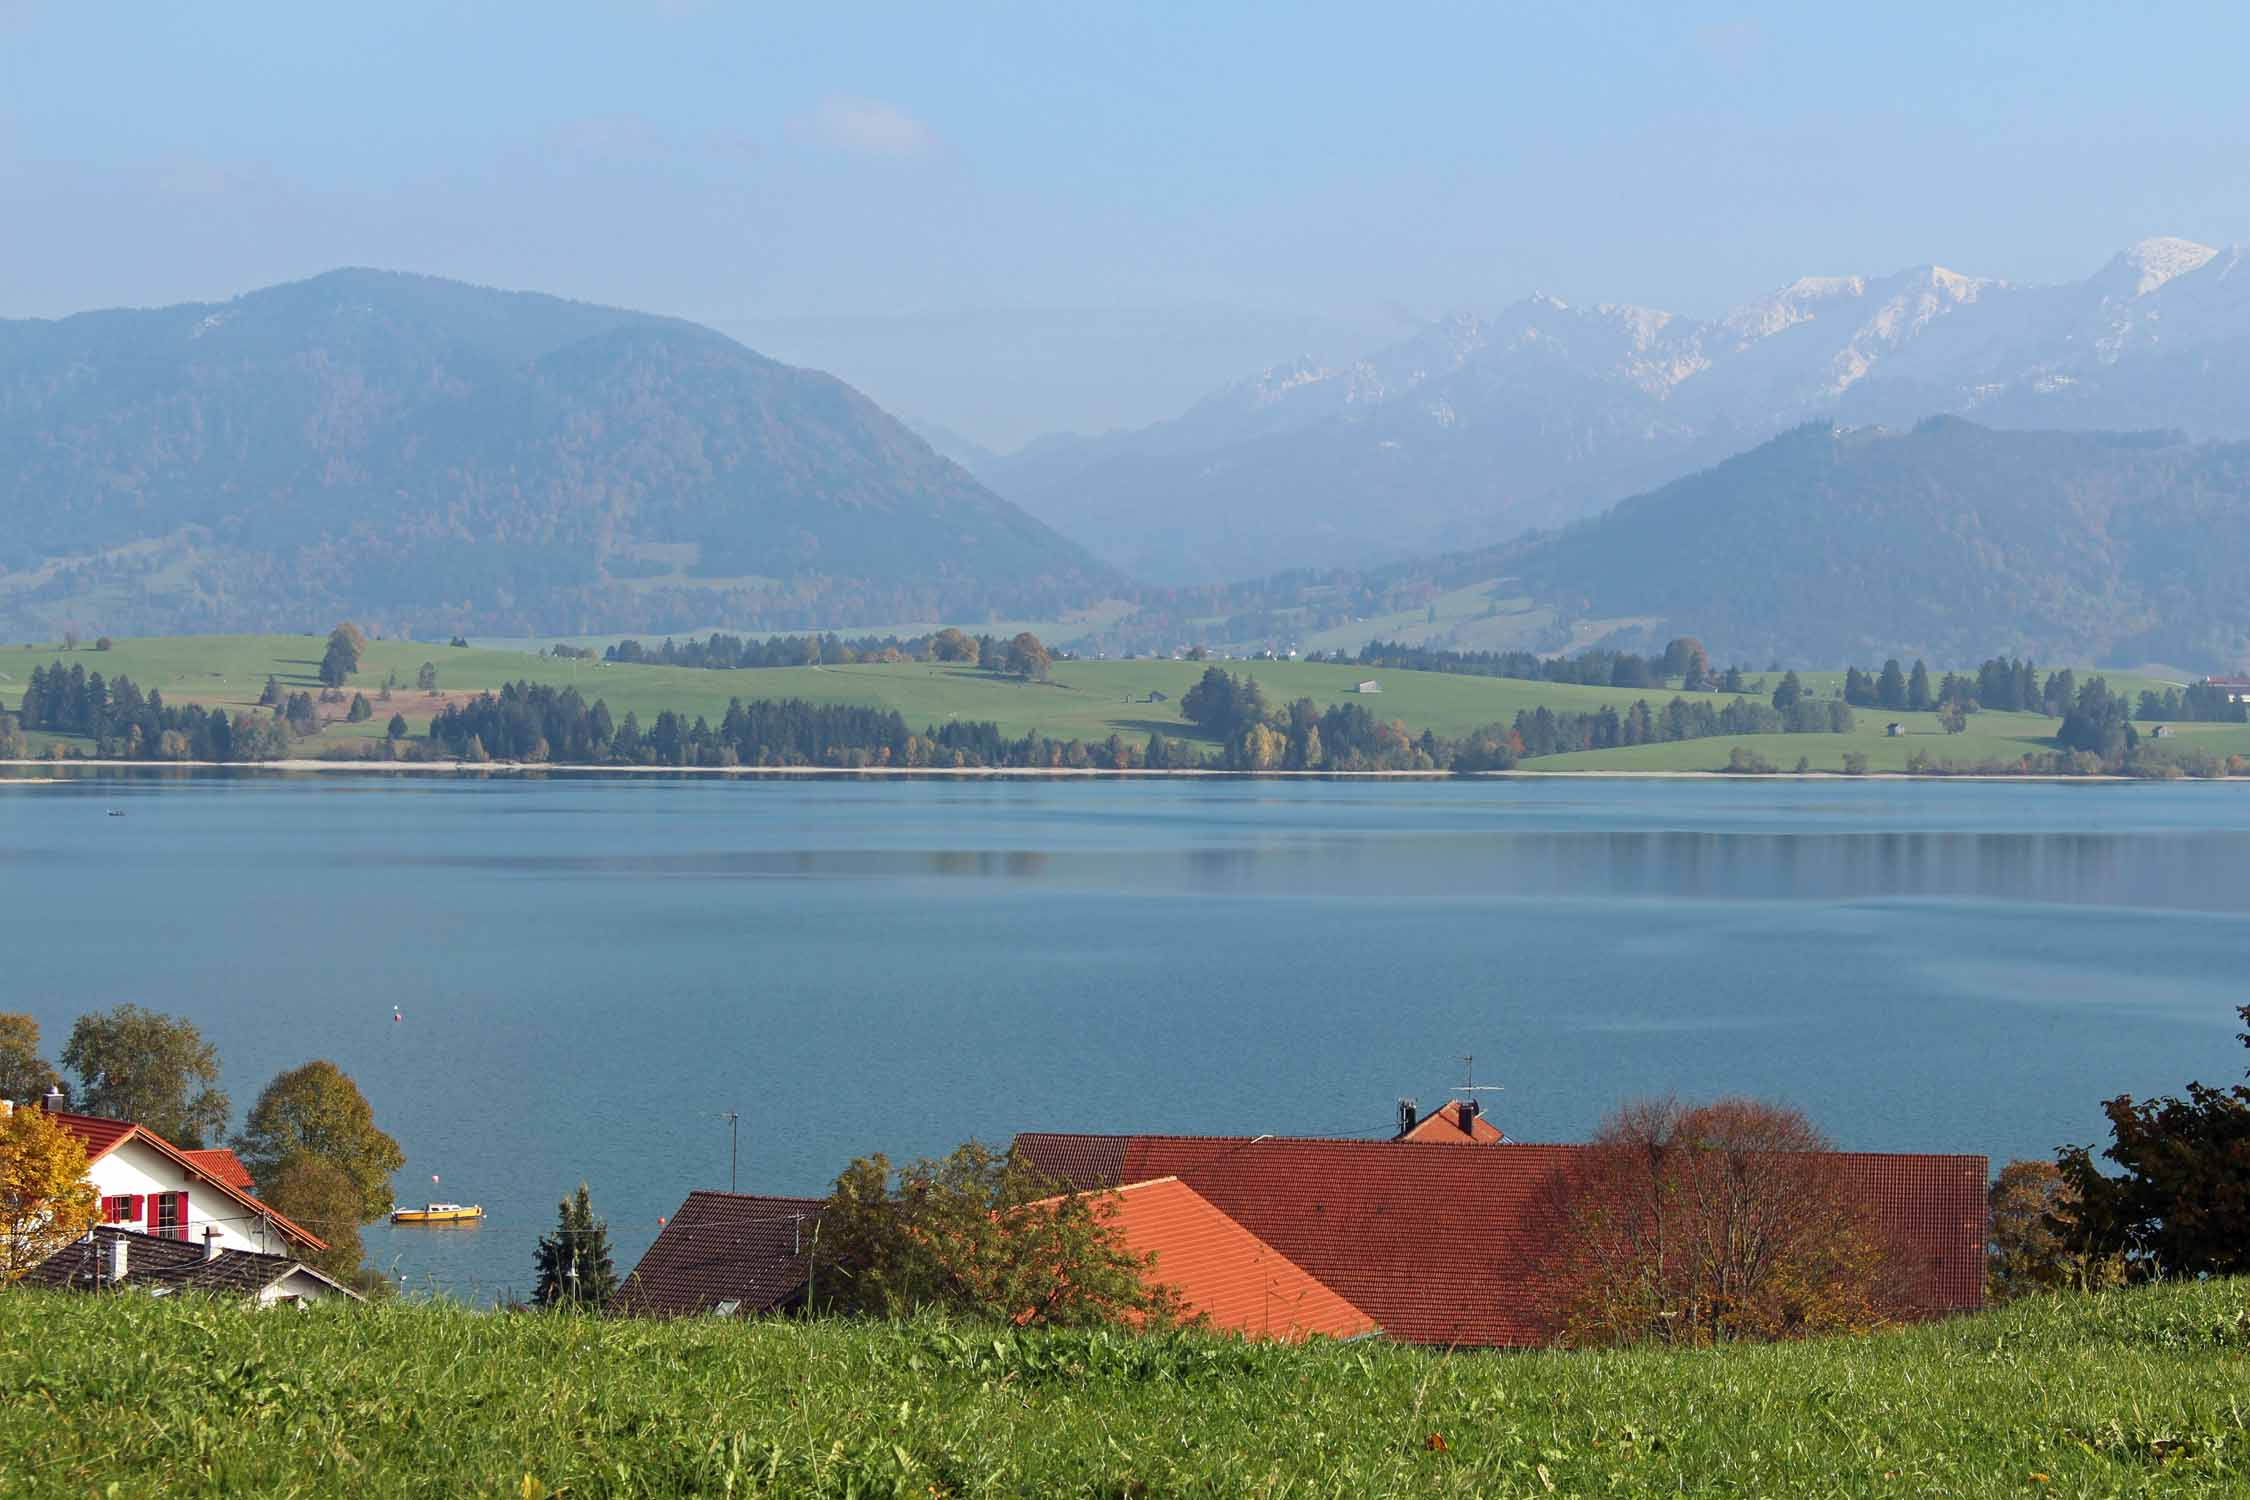 Forggensee lake